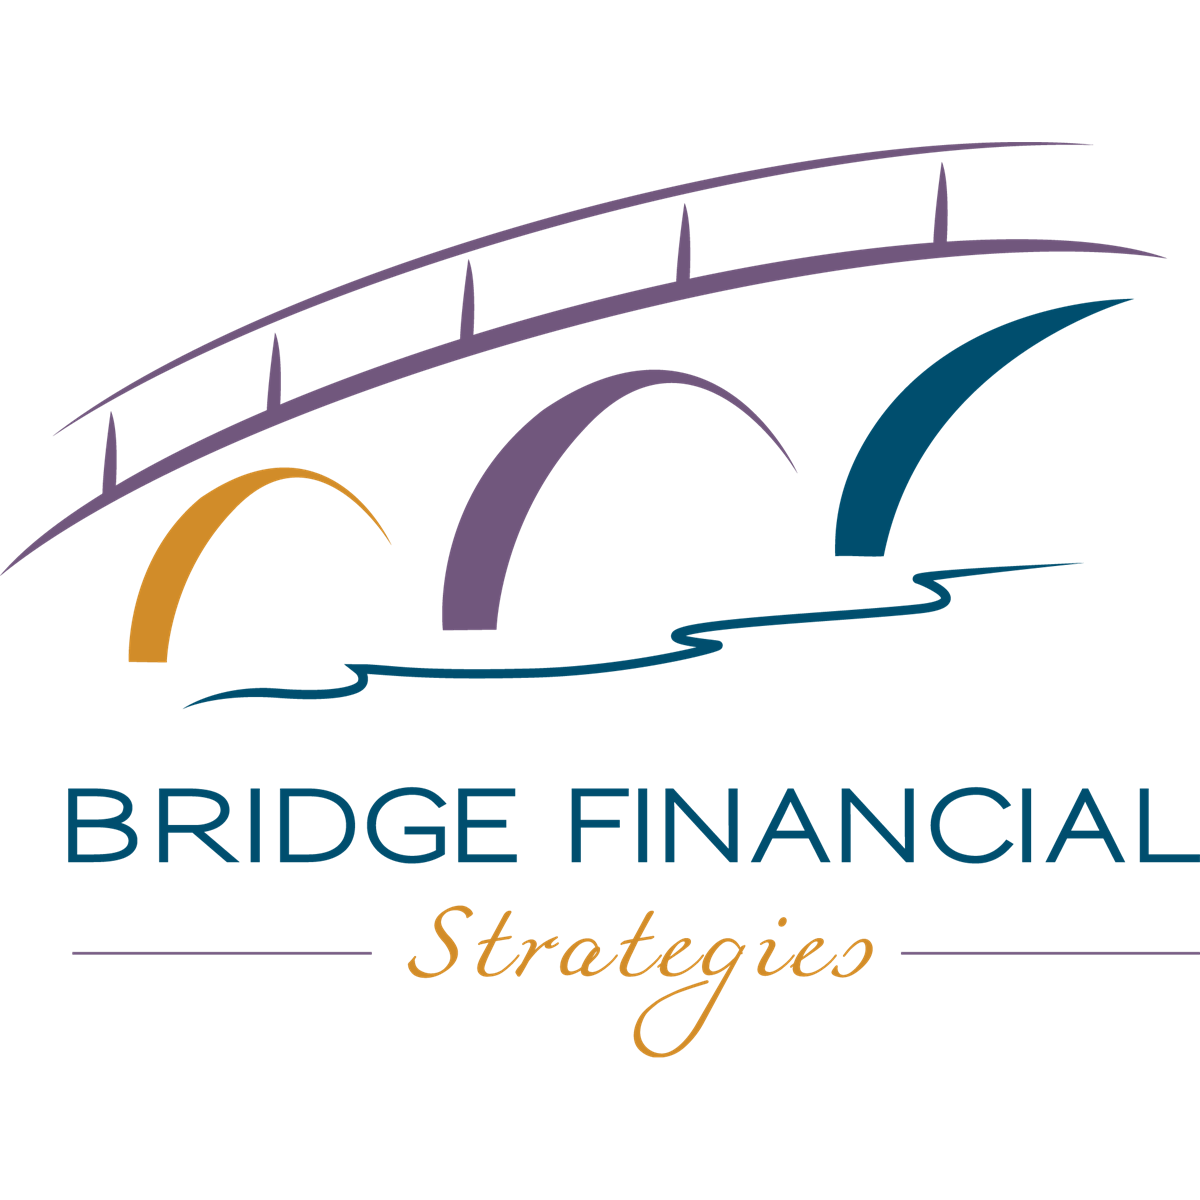 Bridge Financial Strategies